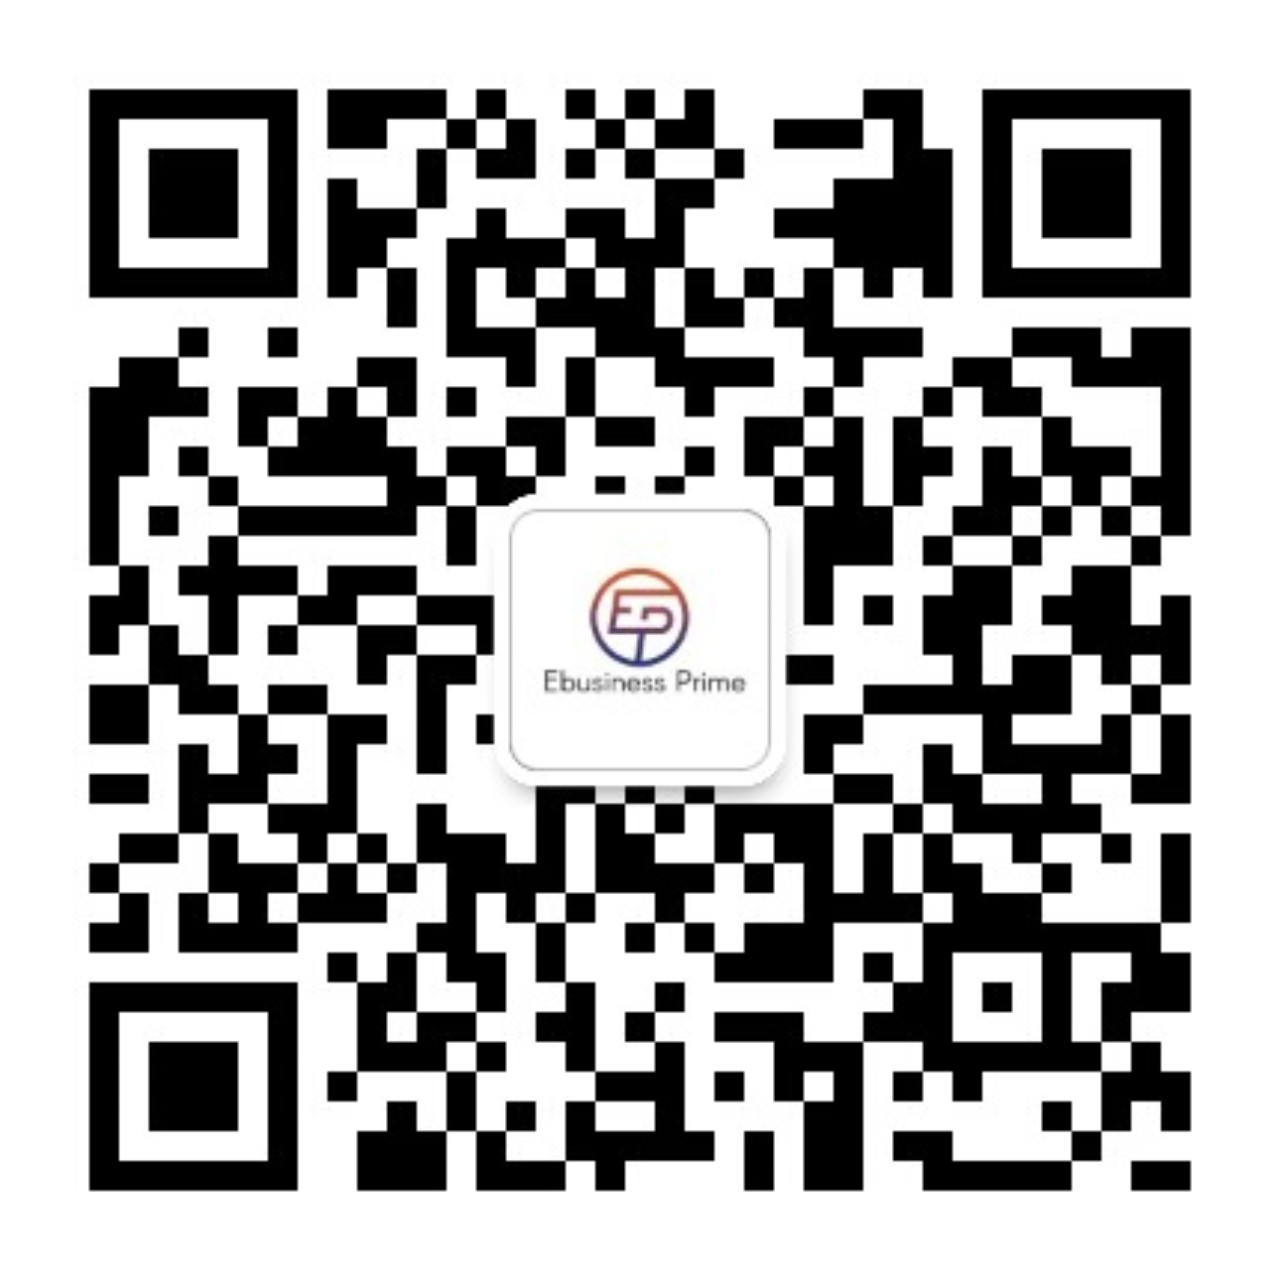 Excited to launch Ebusiness Prime WeChat official account